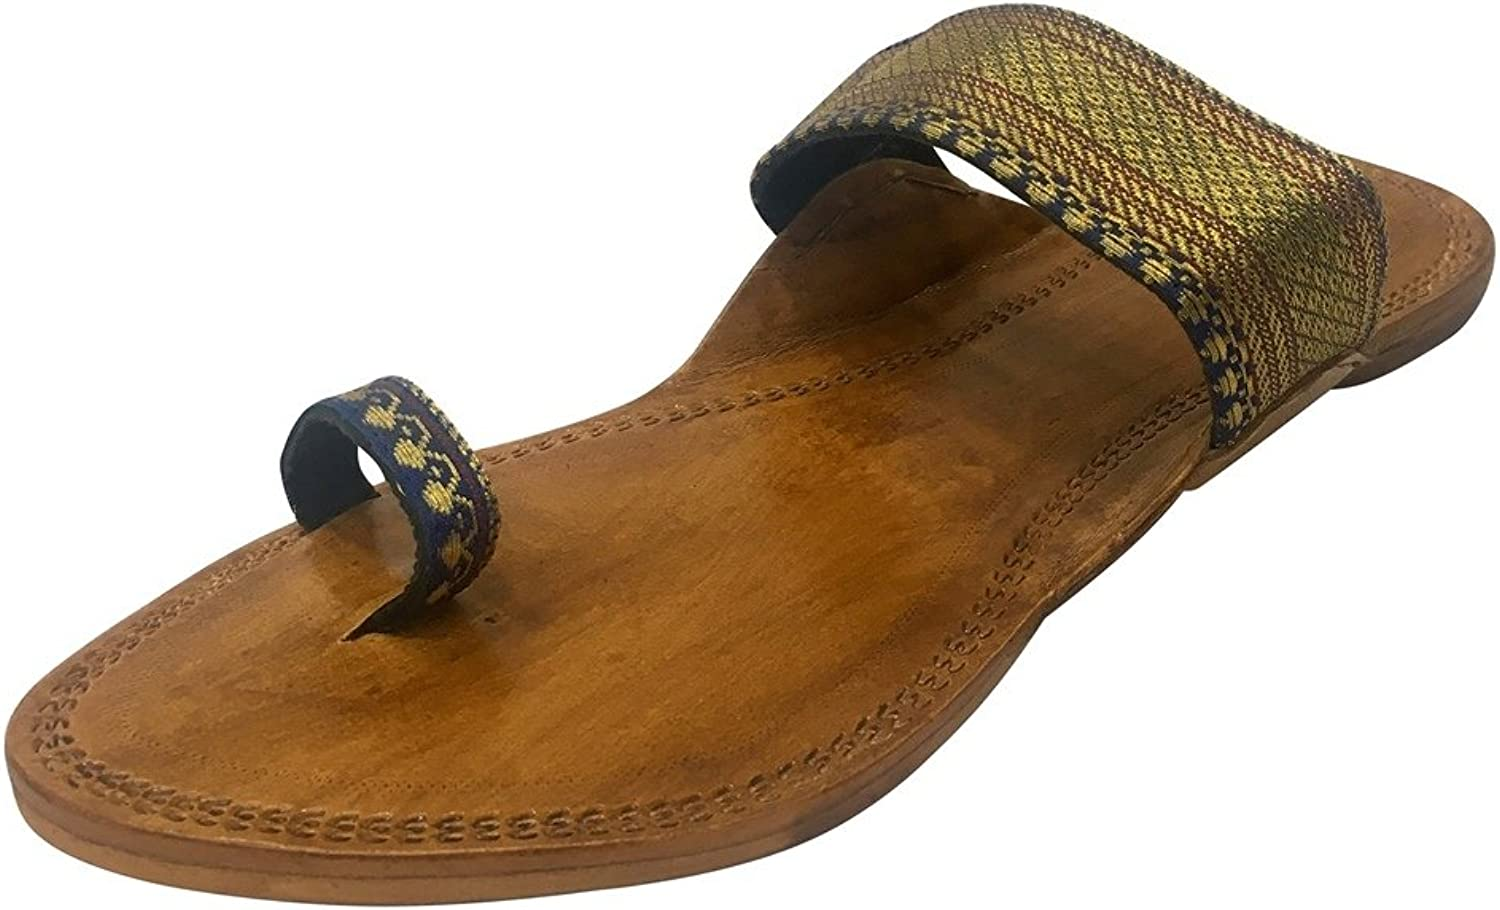 Step n Style Ethnic shoes Indian Sandals Kolhapuri Slipper Ladies Indian Leather Chappals Kolhapuri Sandals